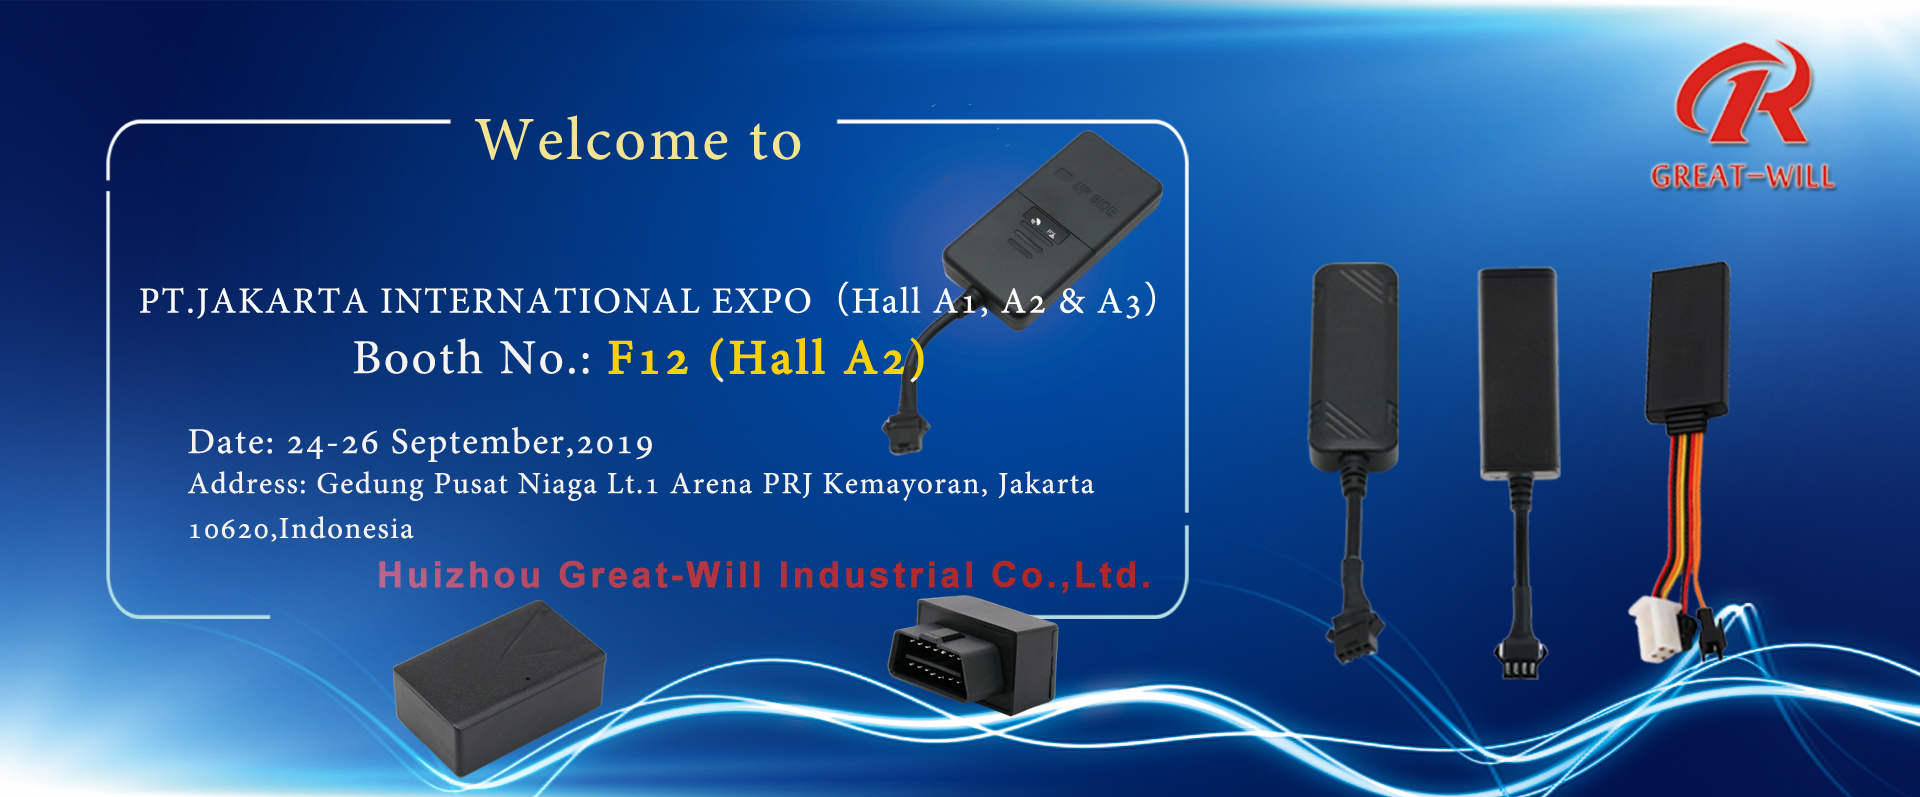 Trade fair in Indonesia